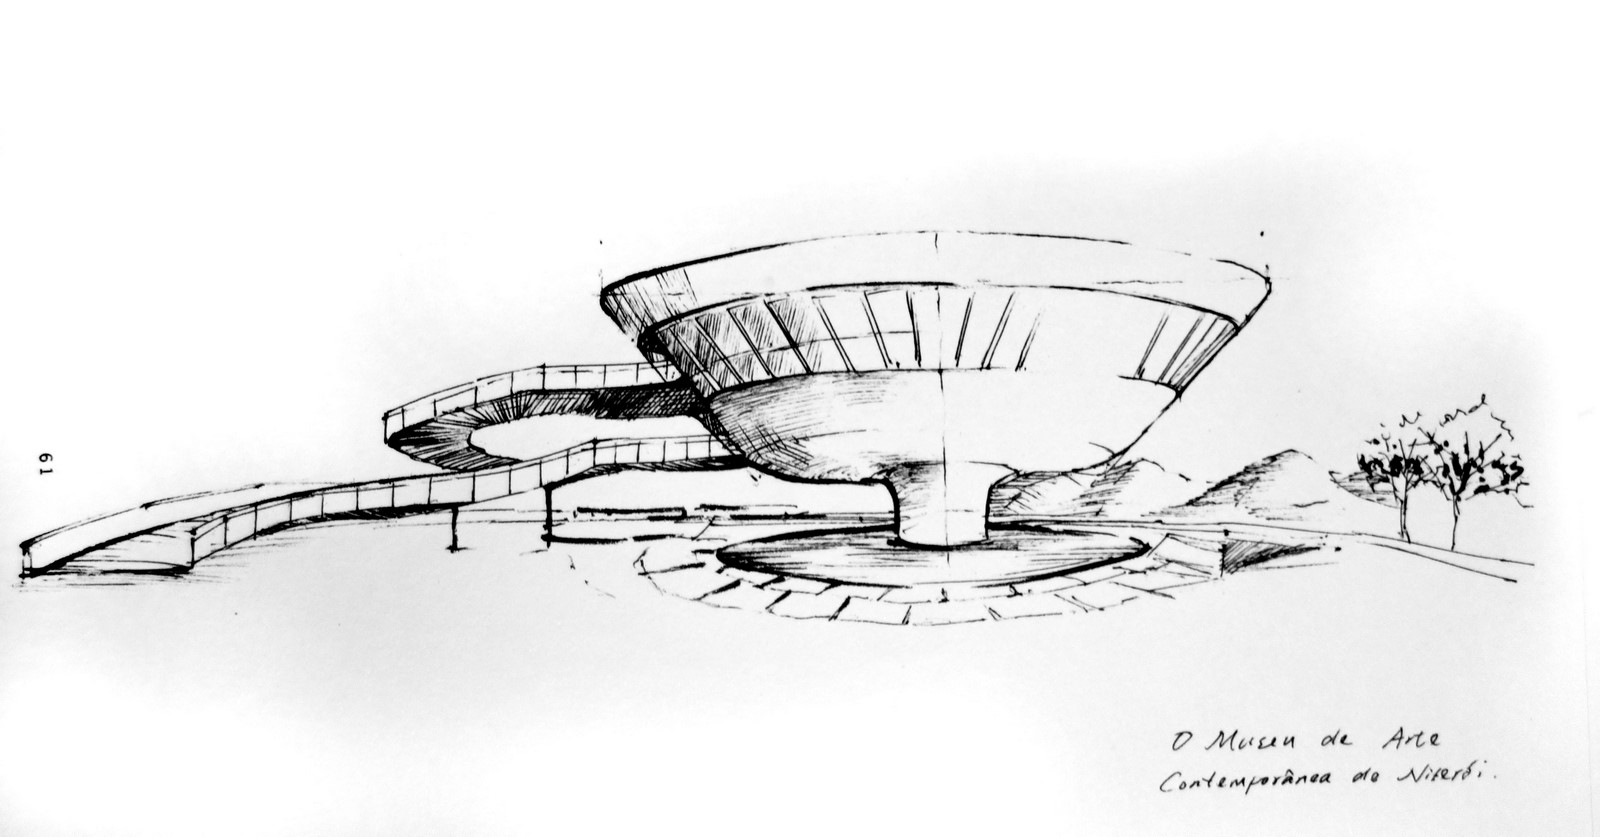 Niterói Contemporary Art Museum by Oscar Niemeyer: Iconic Saucer-Shaped Structure Sheet5